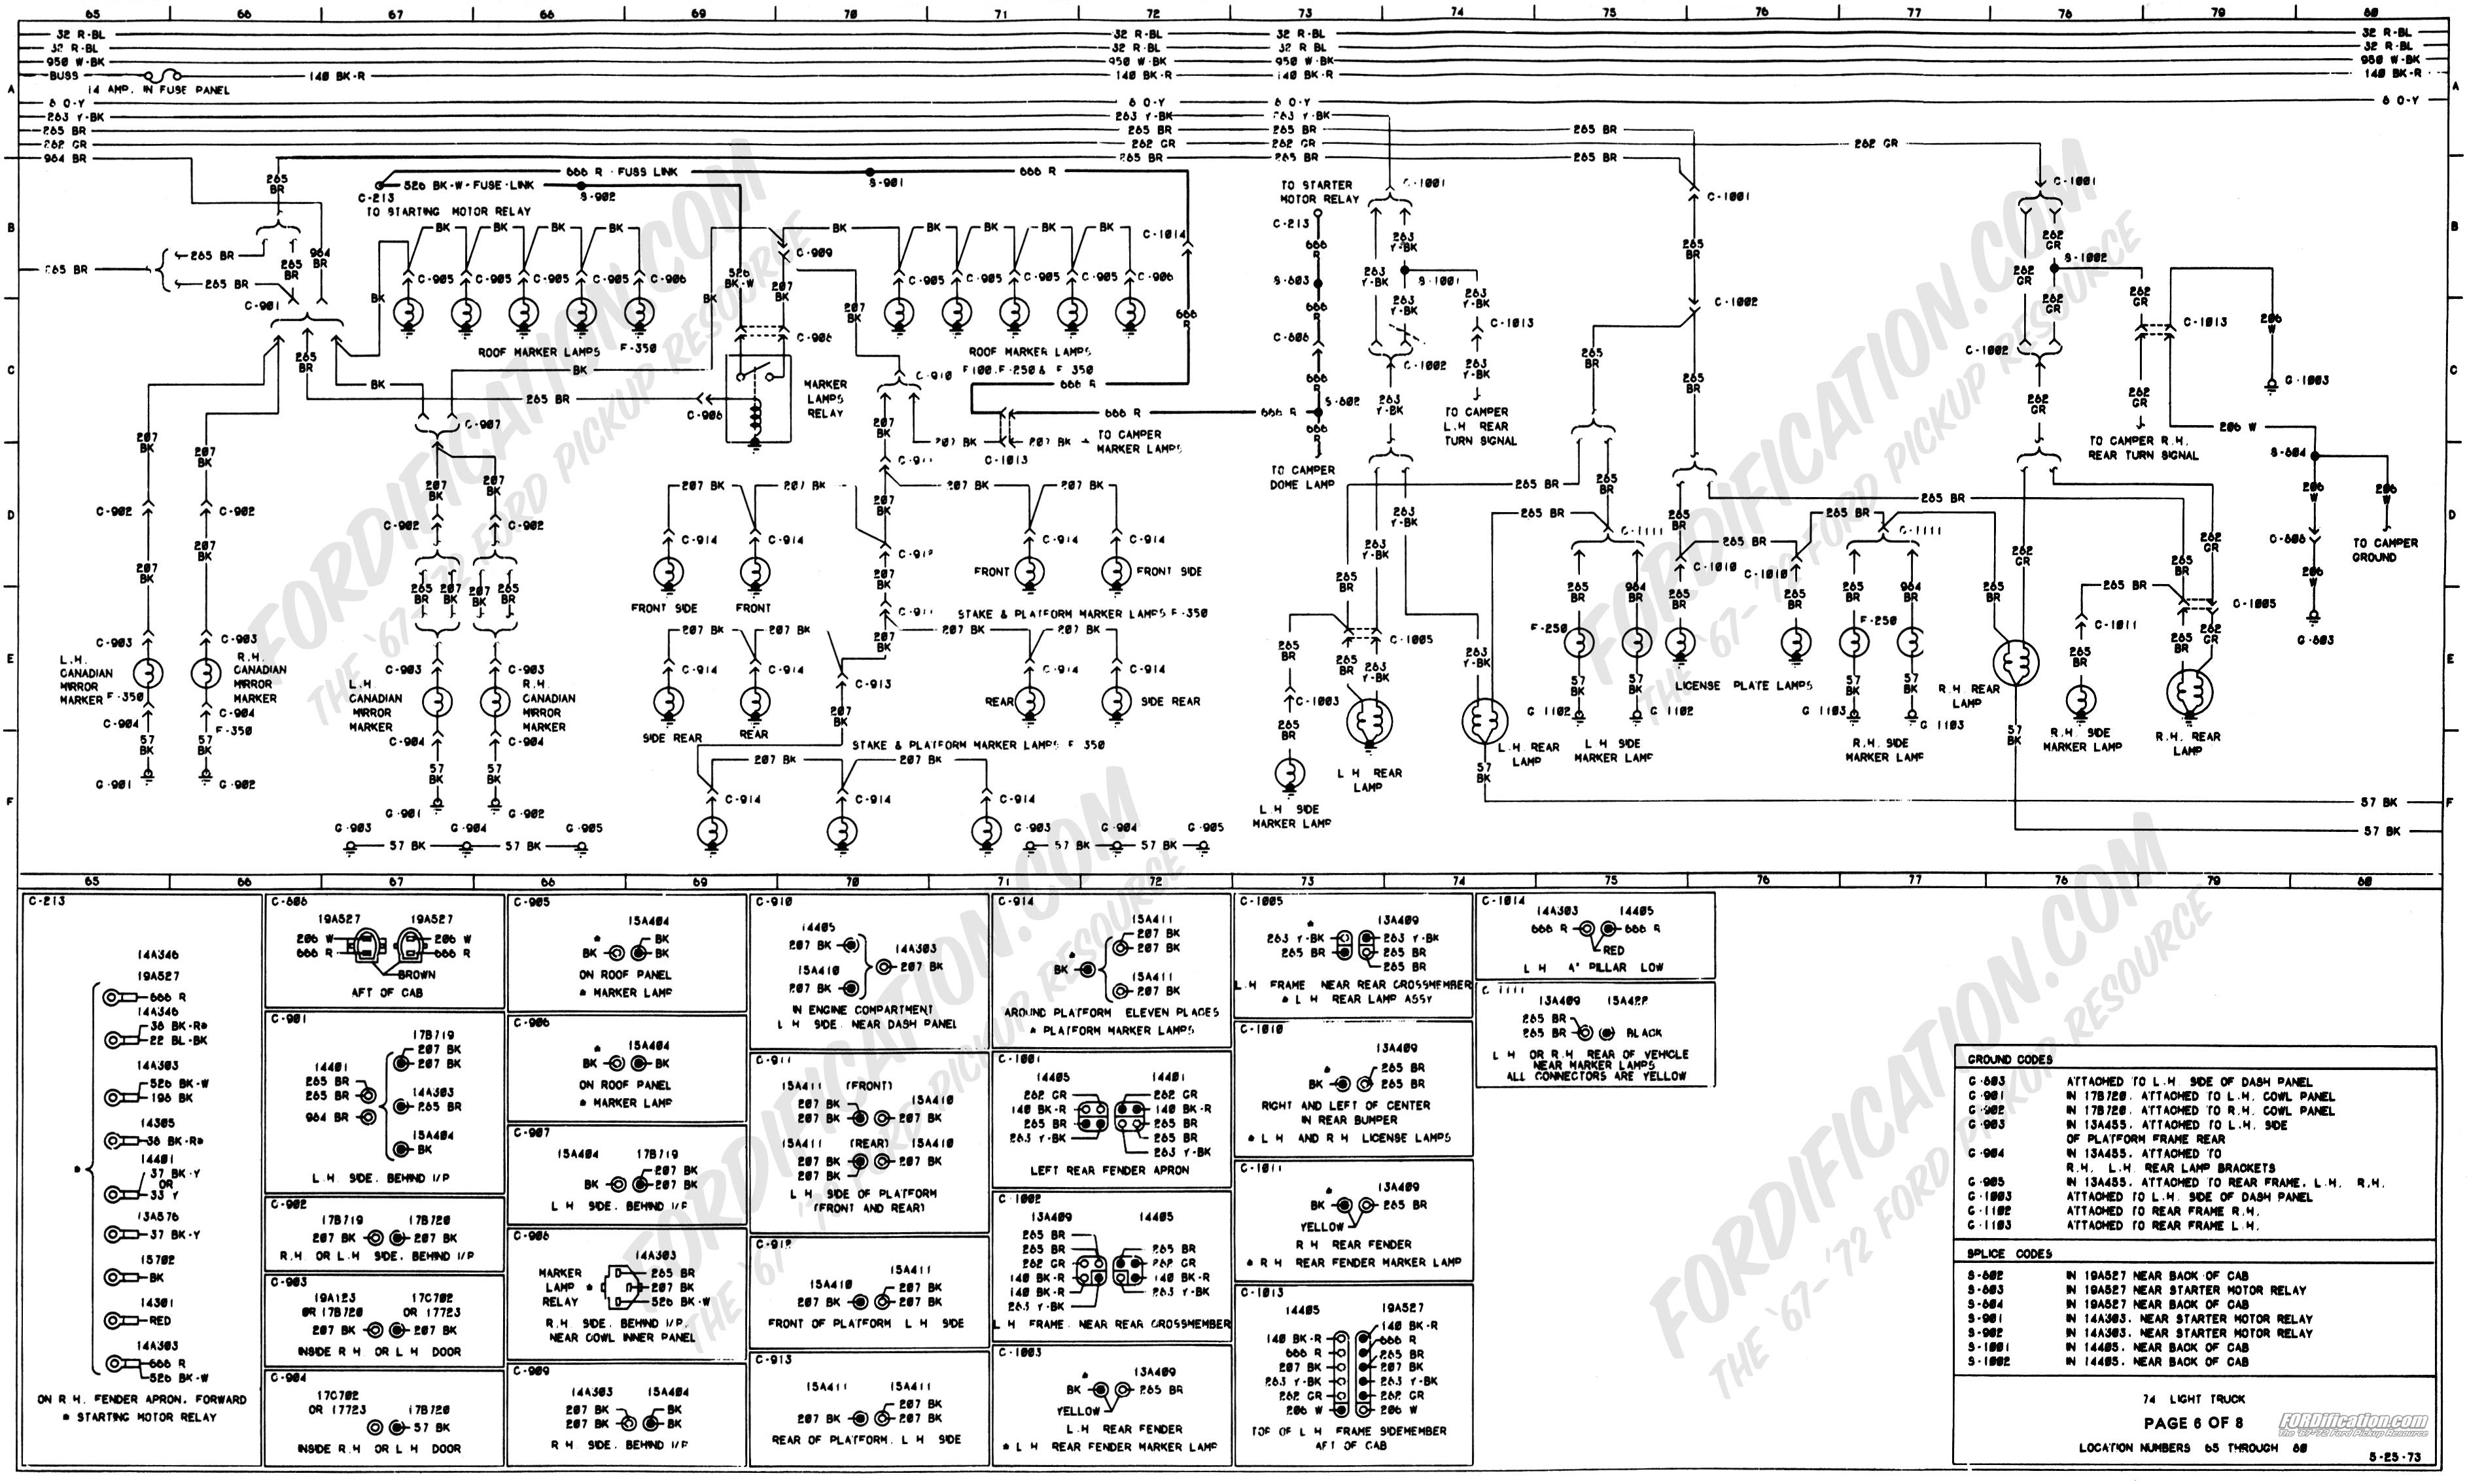 Ford Truck Wiring Diagrams Free 1973 1979 ford Truck Wiring Diagrams & Schematics fordification Of Ford Truck Wiring Diagrams Free